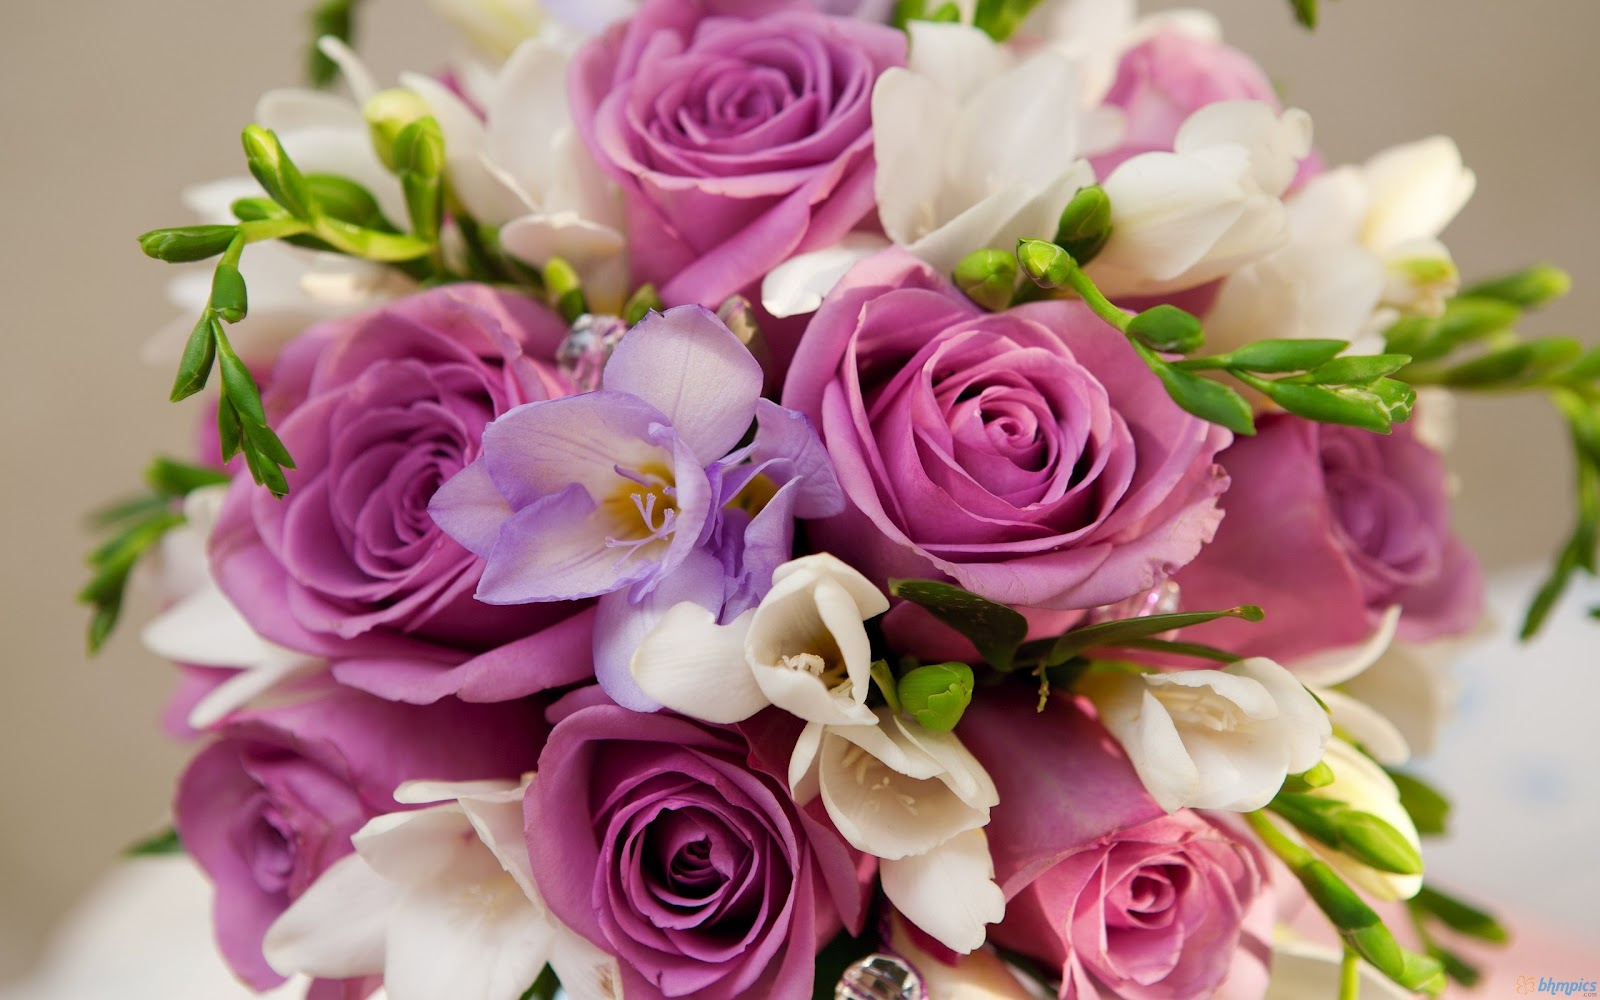 http://2.bp.blogspot.com/-Fm0DeZNQ6lc/UDxGrAAI7gI/AAAAAAAAC3o/rBypjHGlEhc/s1600/beautiful_purple_white_flowers_bouquet-2560x1600.jpg